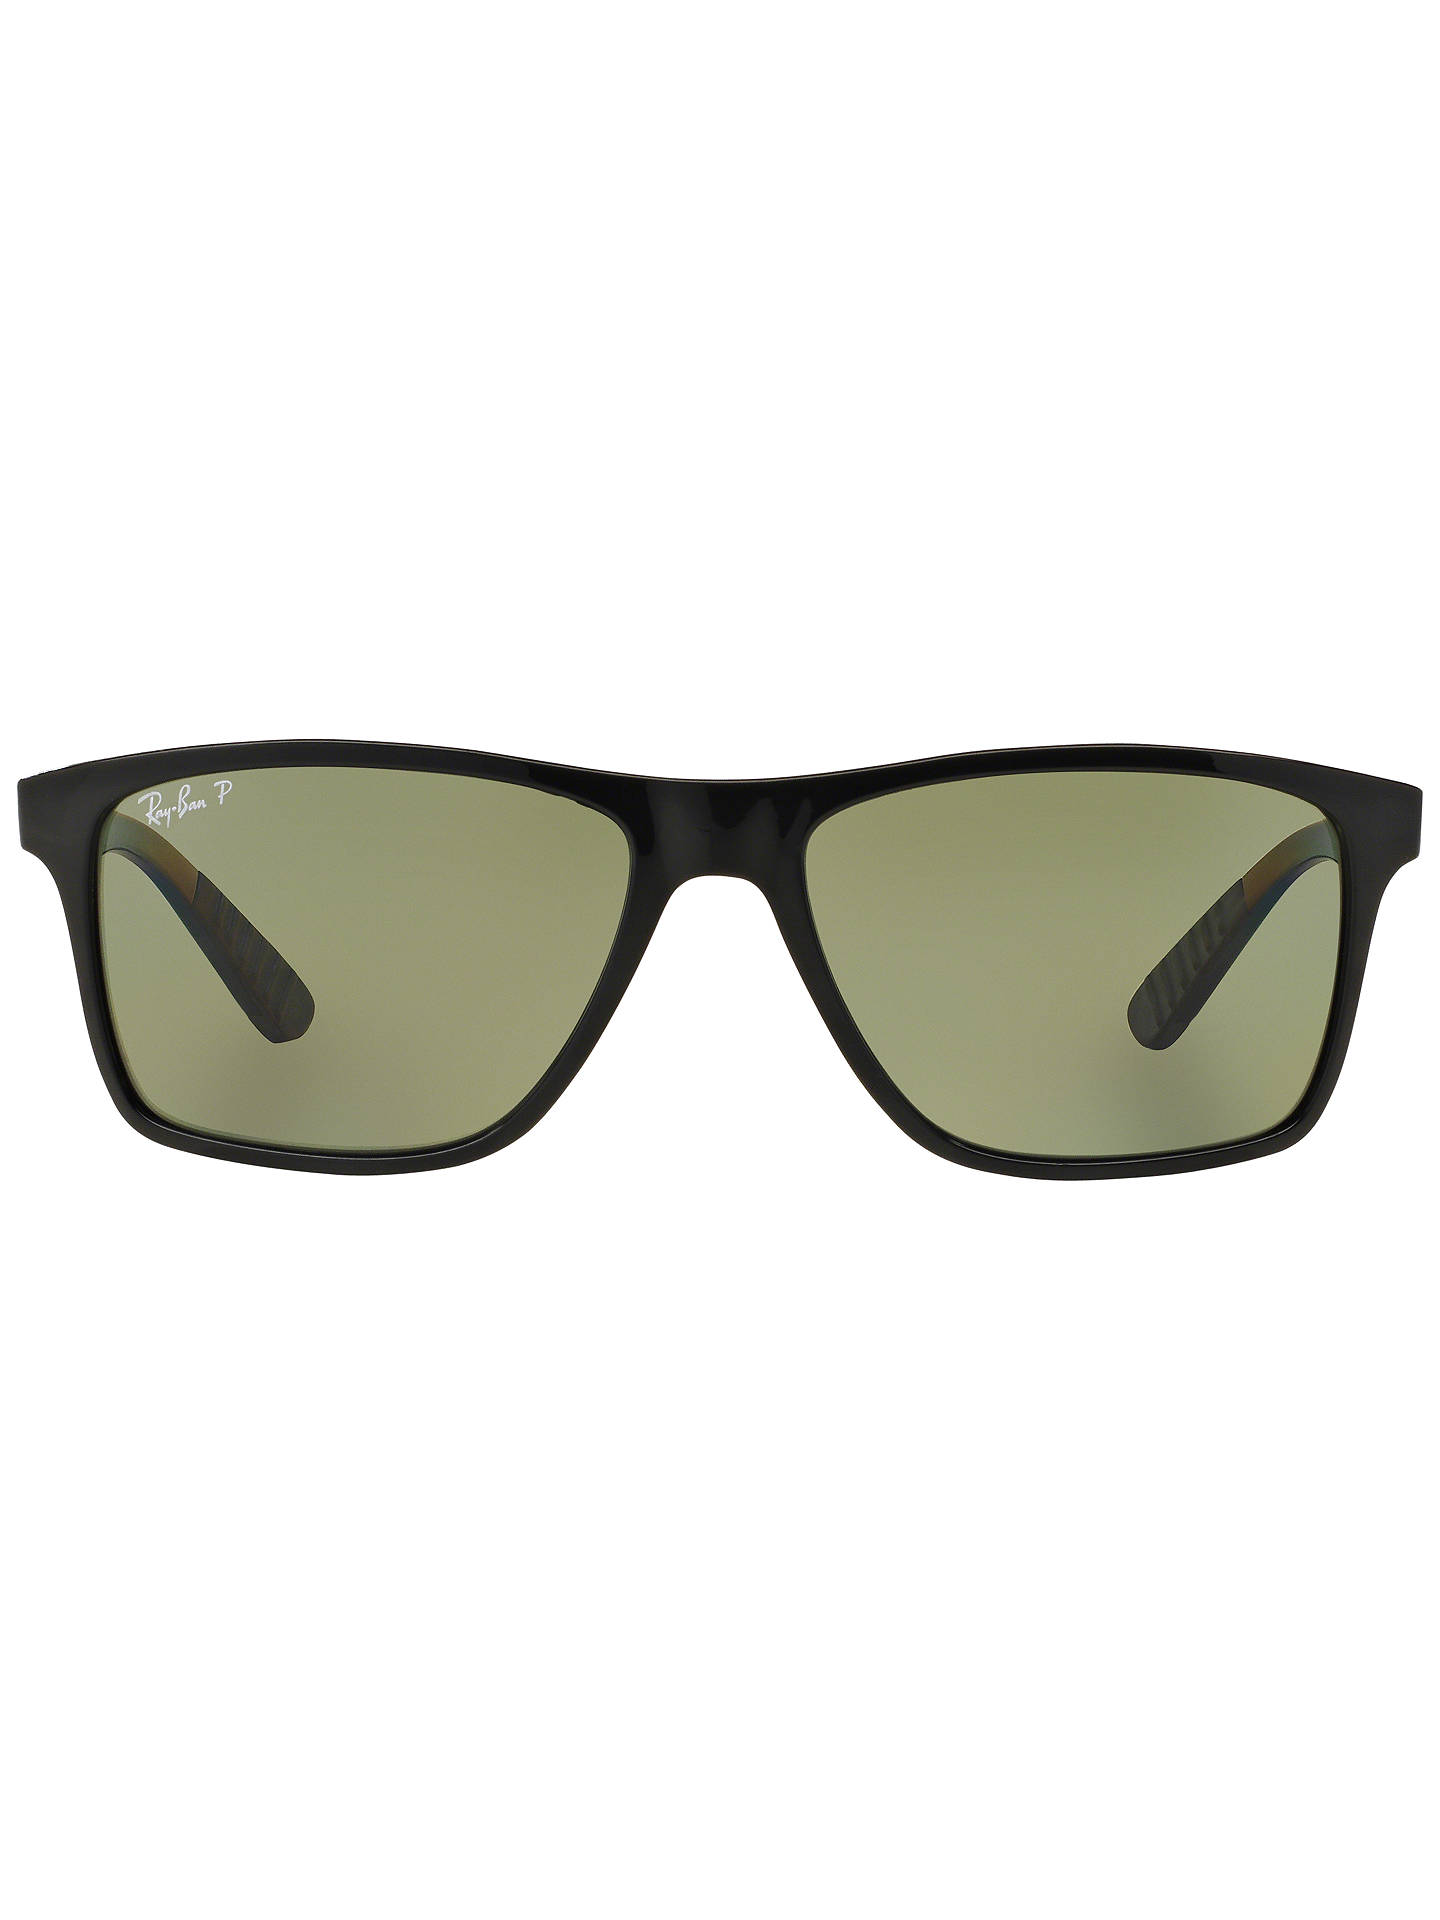 BuyRay-Ban RB4234 Polarised Rectangular Sunglasses, Black Online at johnlewis.com